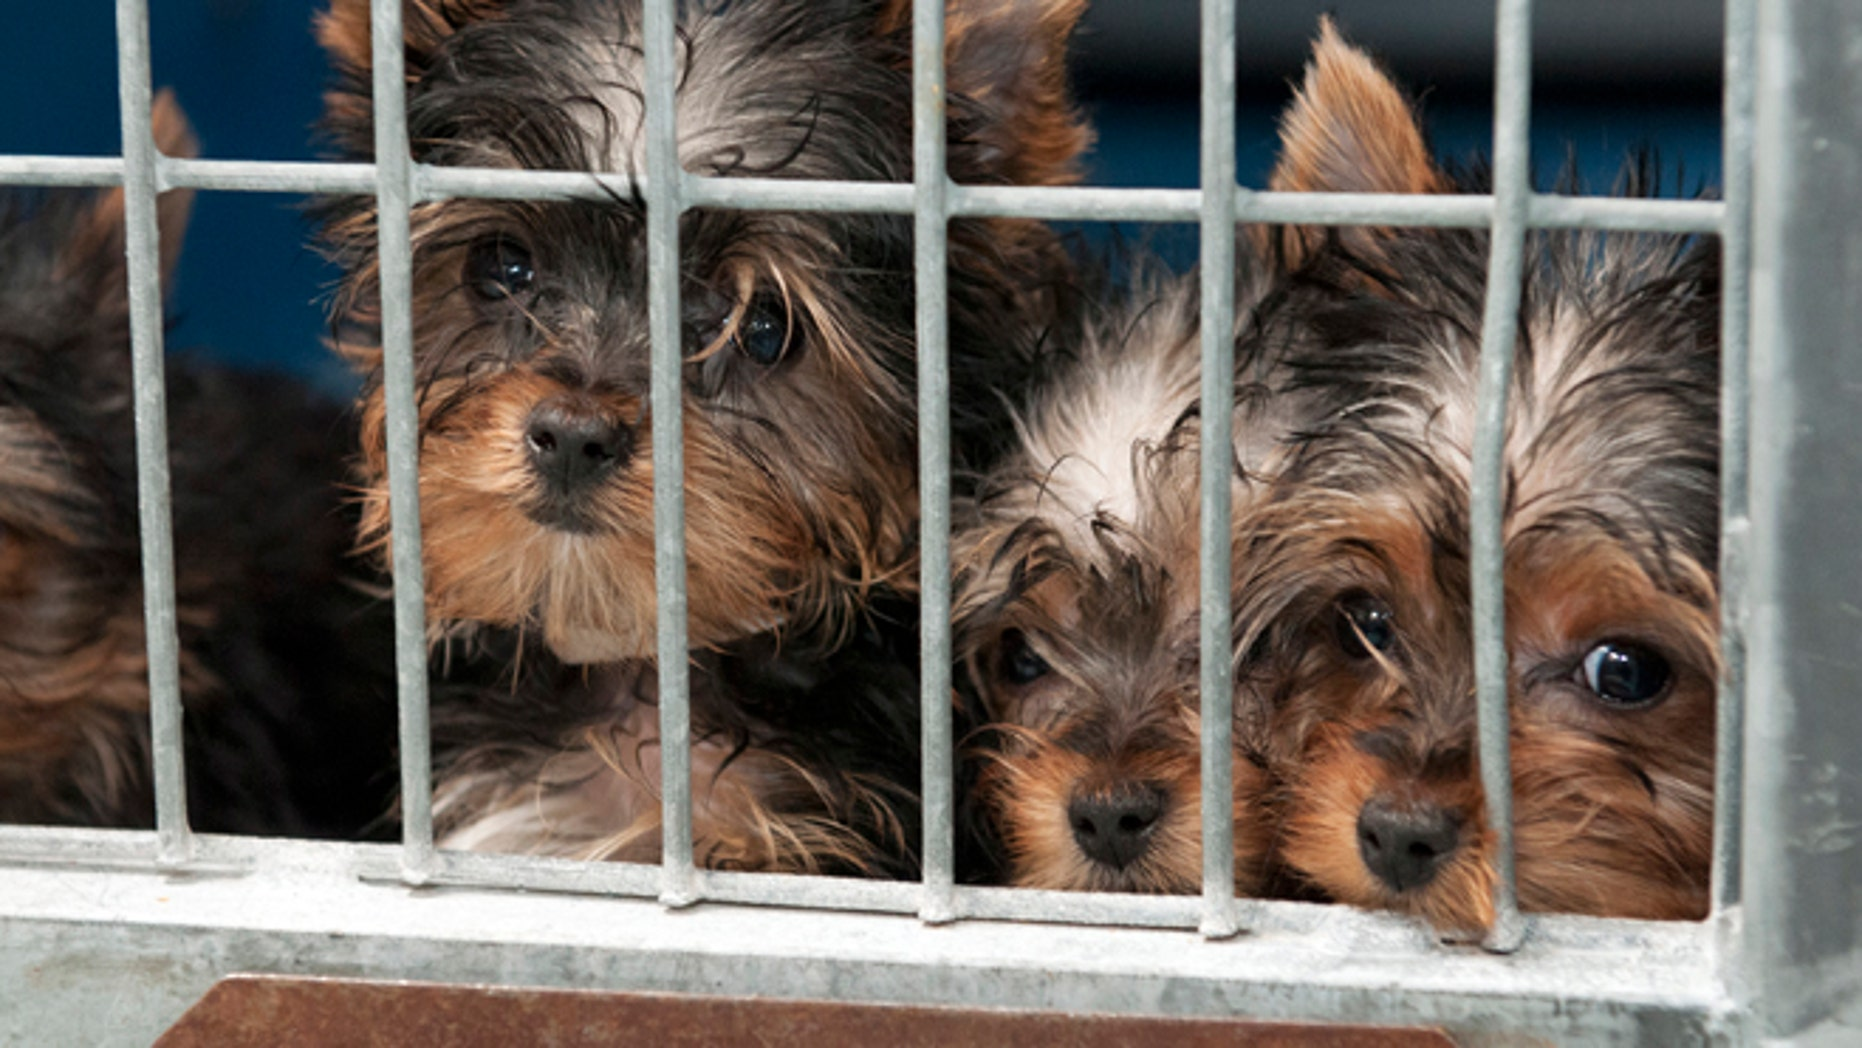 Feb. 3, 2014: Rescued Yorkshire terrier puppies peer out from their enclosure at Lied Animal Shelter in Las Vegas where 27 puppies were taken after a fire at Gloria Lee's Prince and Princess Pet Boutique.